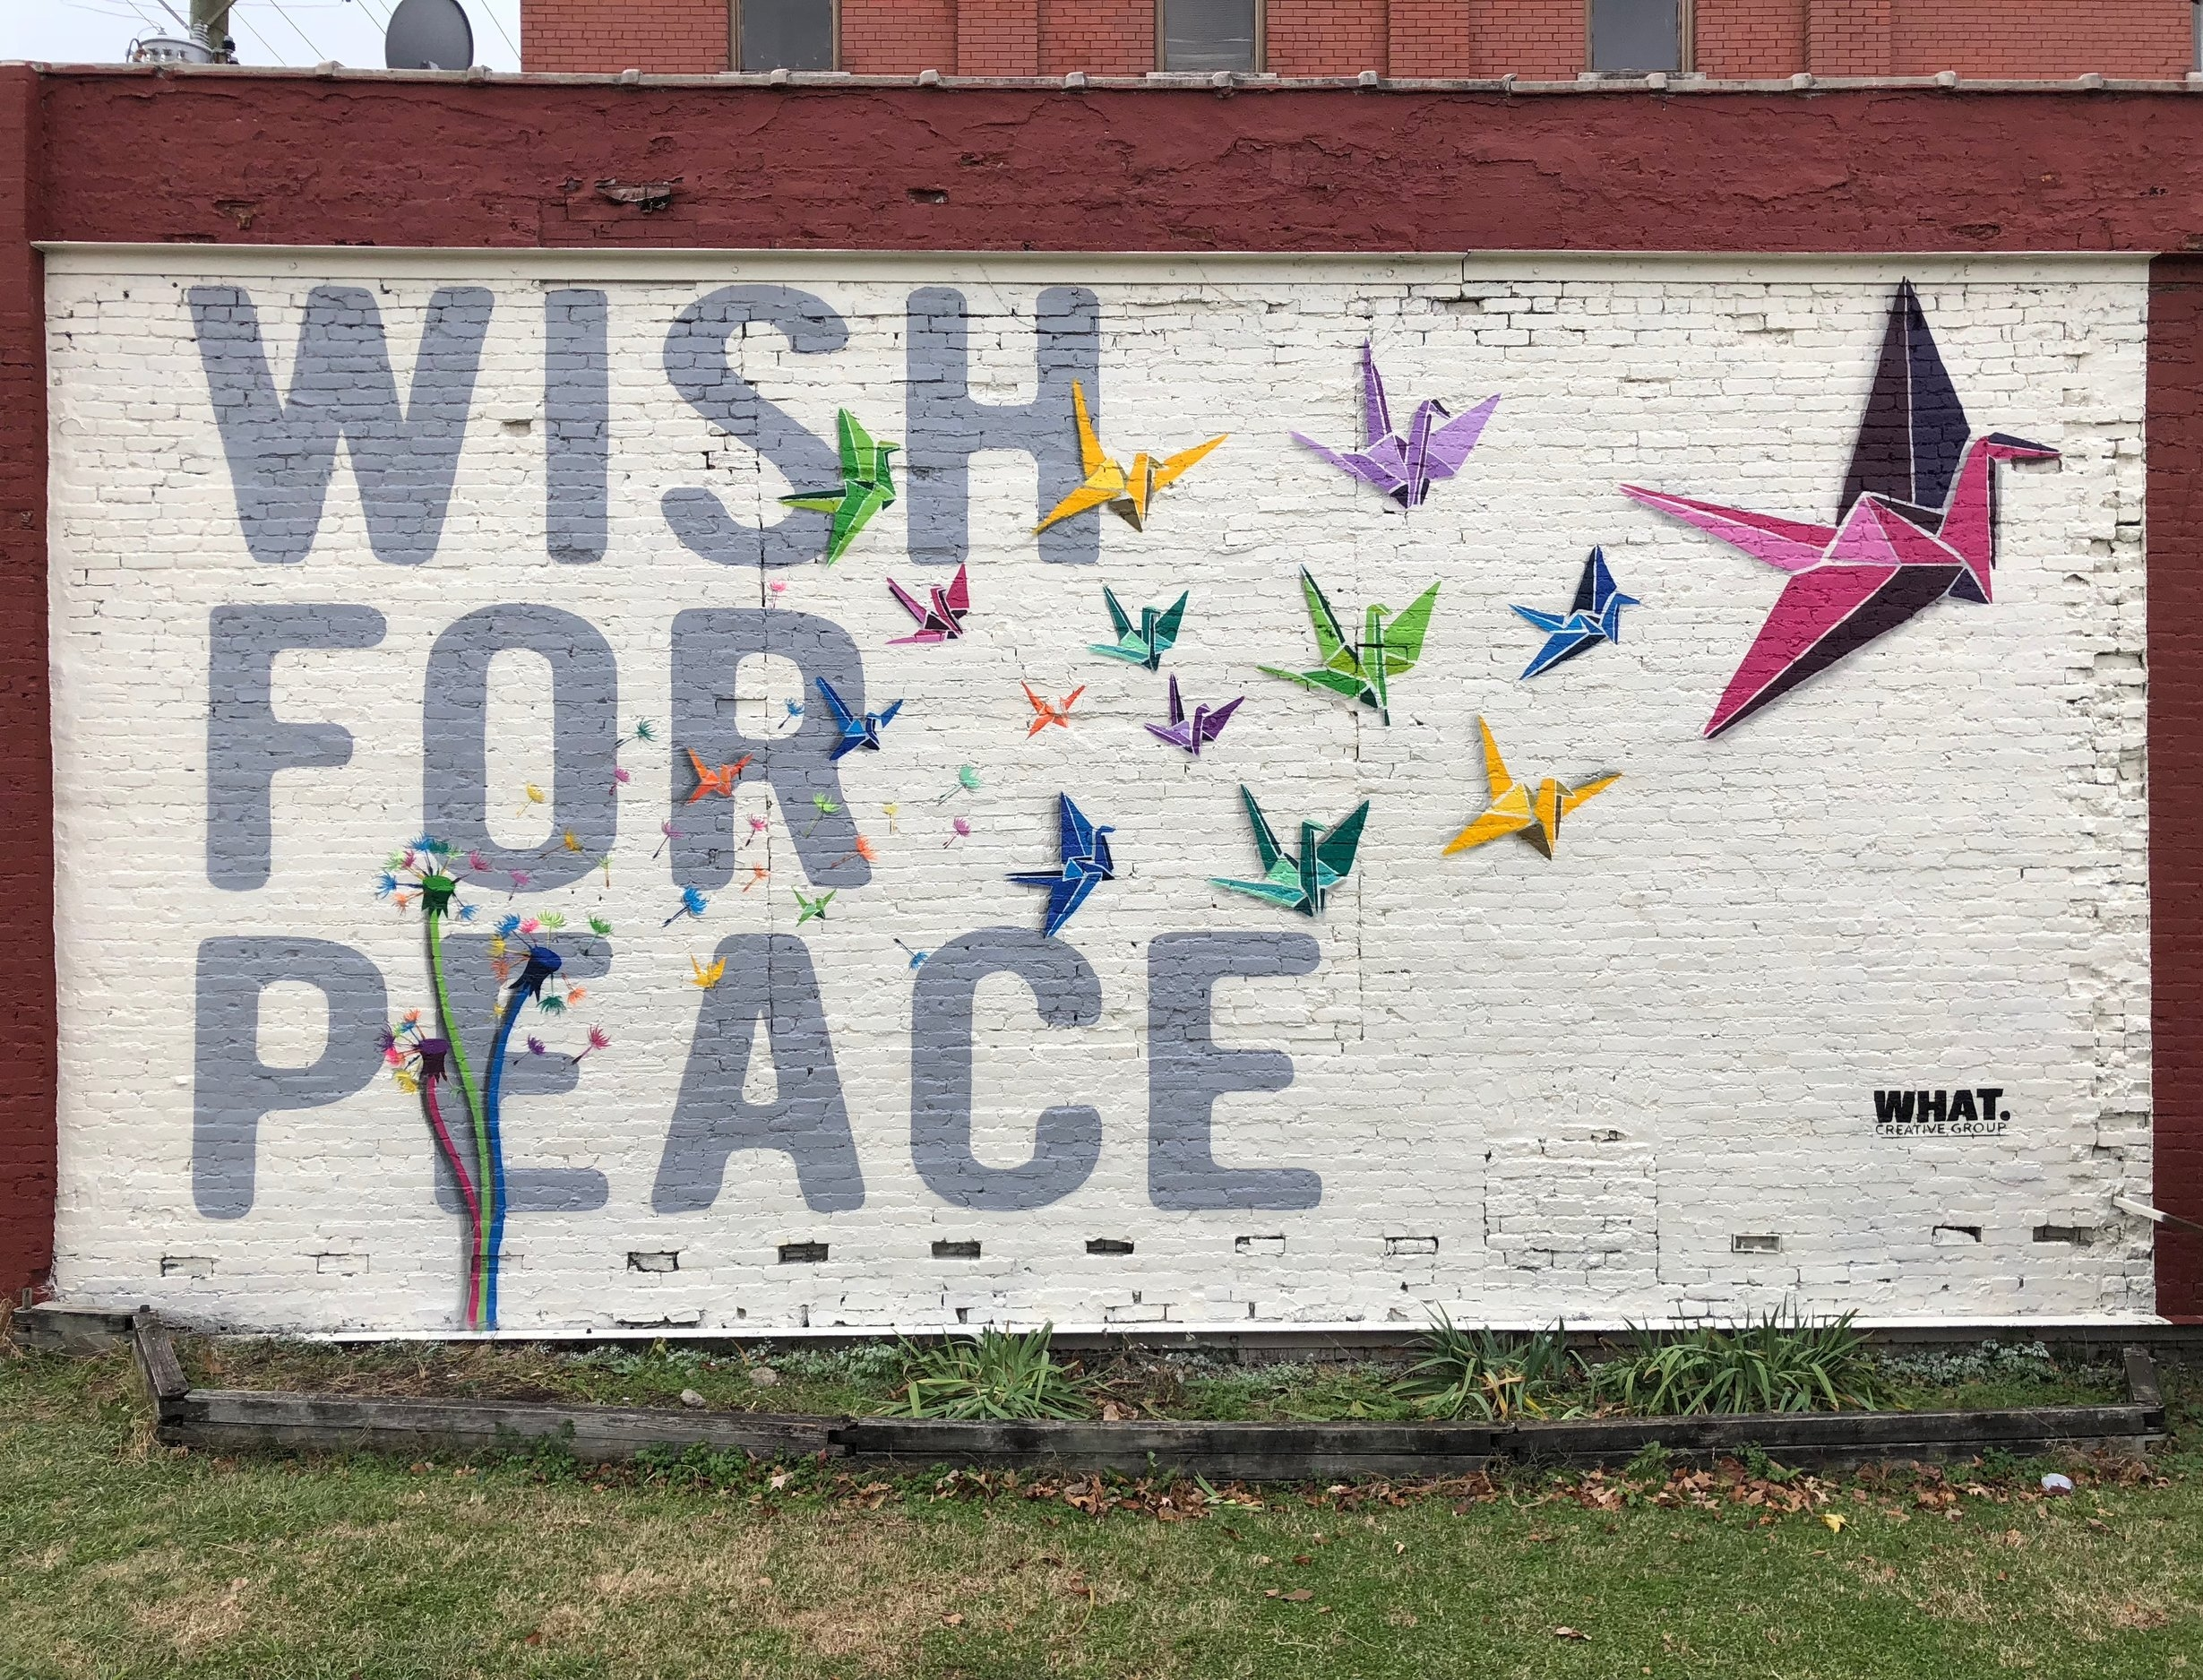 Wish For Peace -  4822 Charlotte Ave  Commissioned by Google Fiber and Nashville Walls Project  28' x 14'